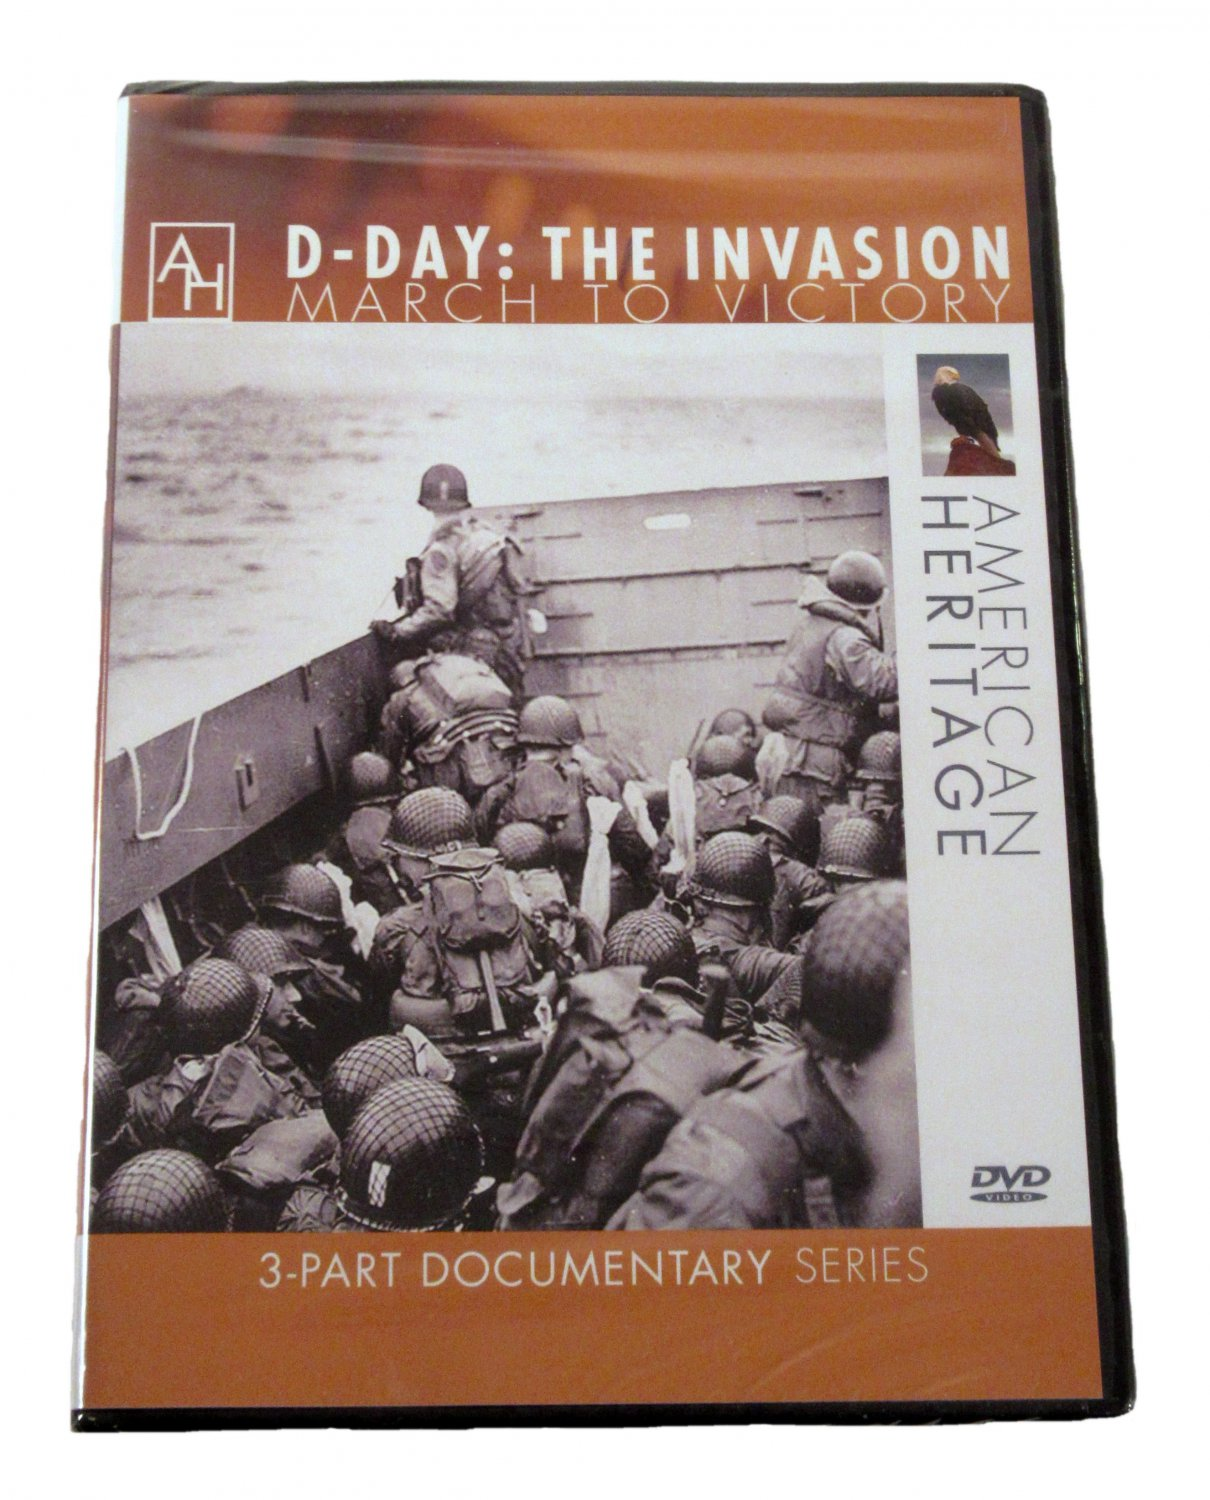 D-Day: The Invasion March to Victory DVD 2010 3-Part Documentary Series